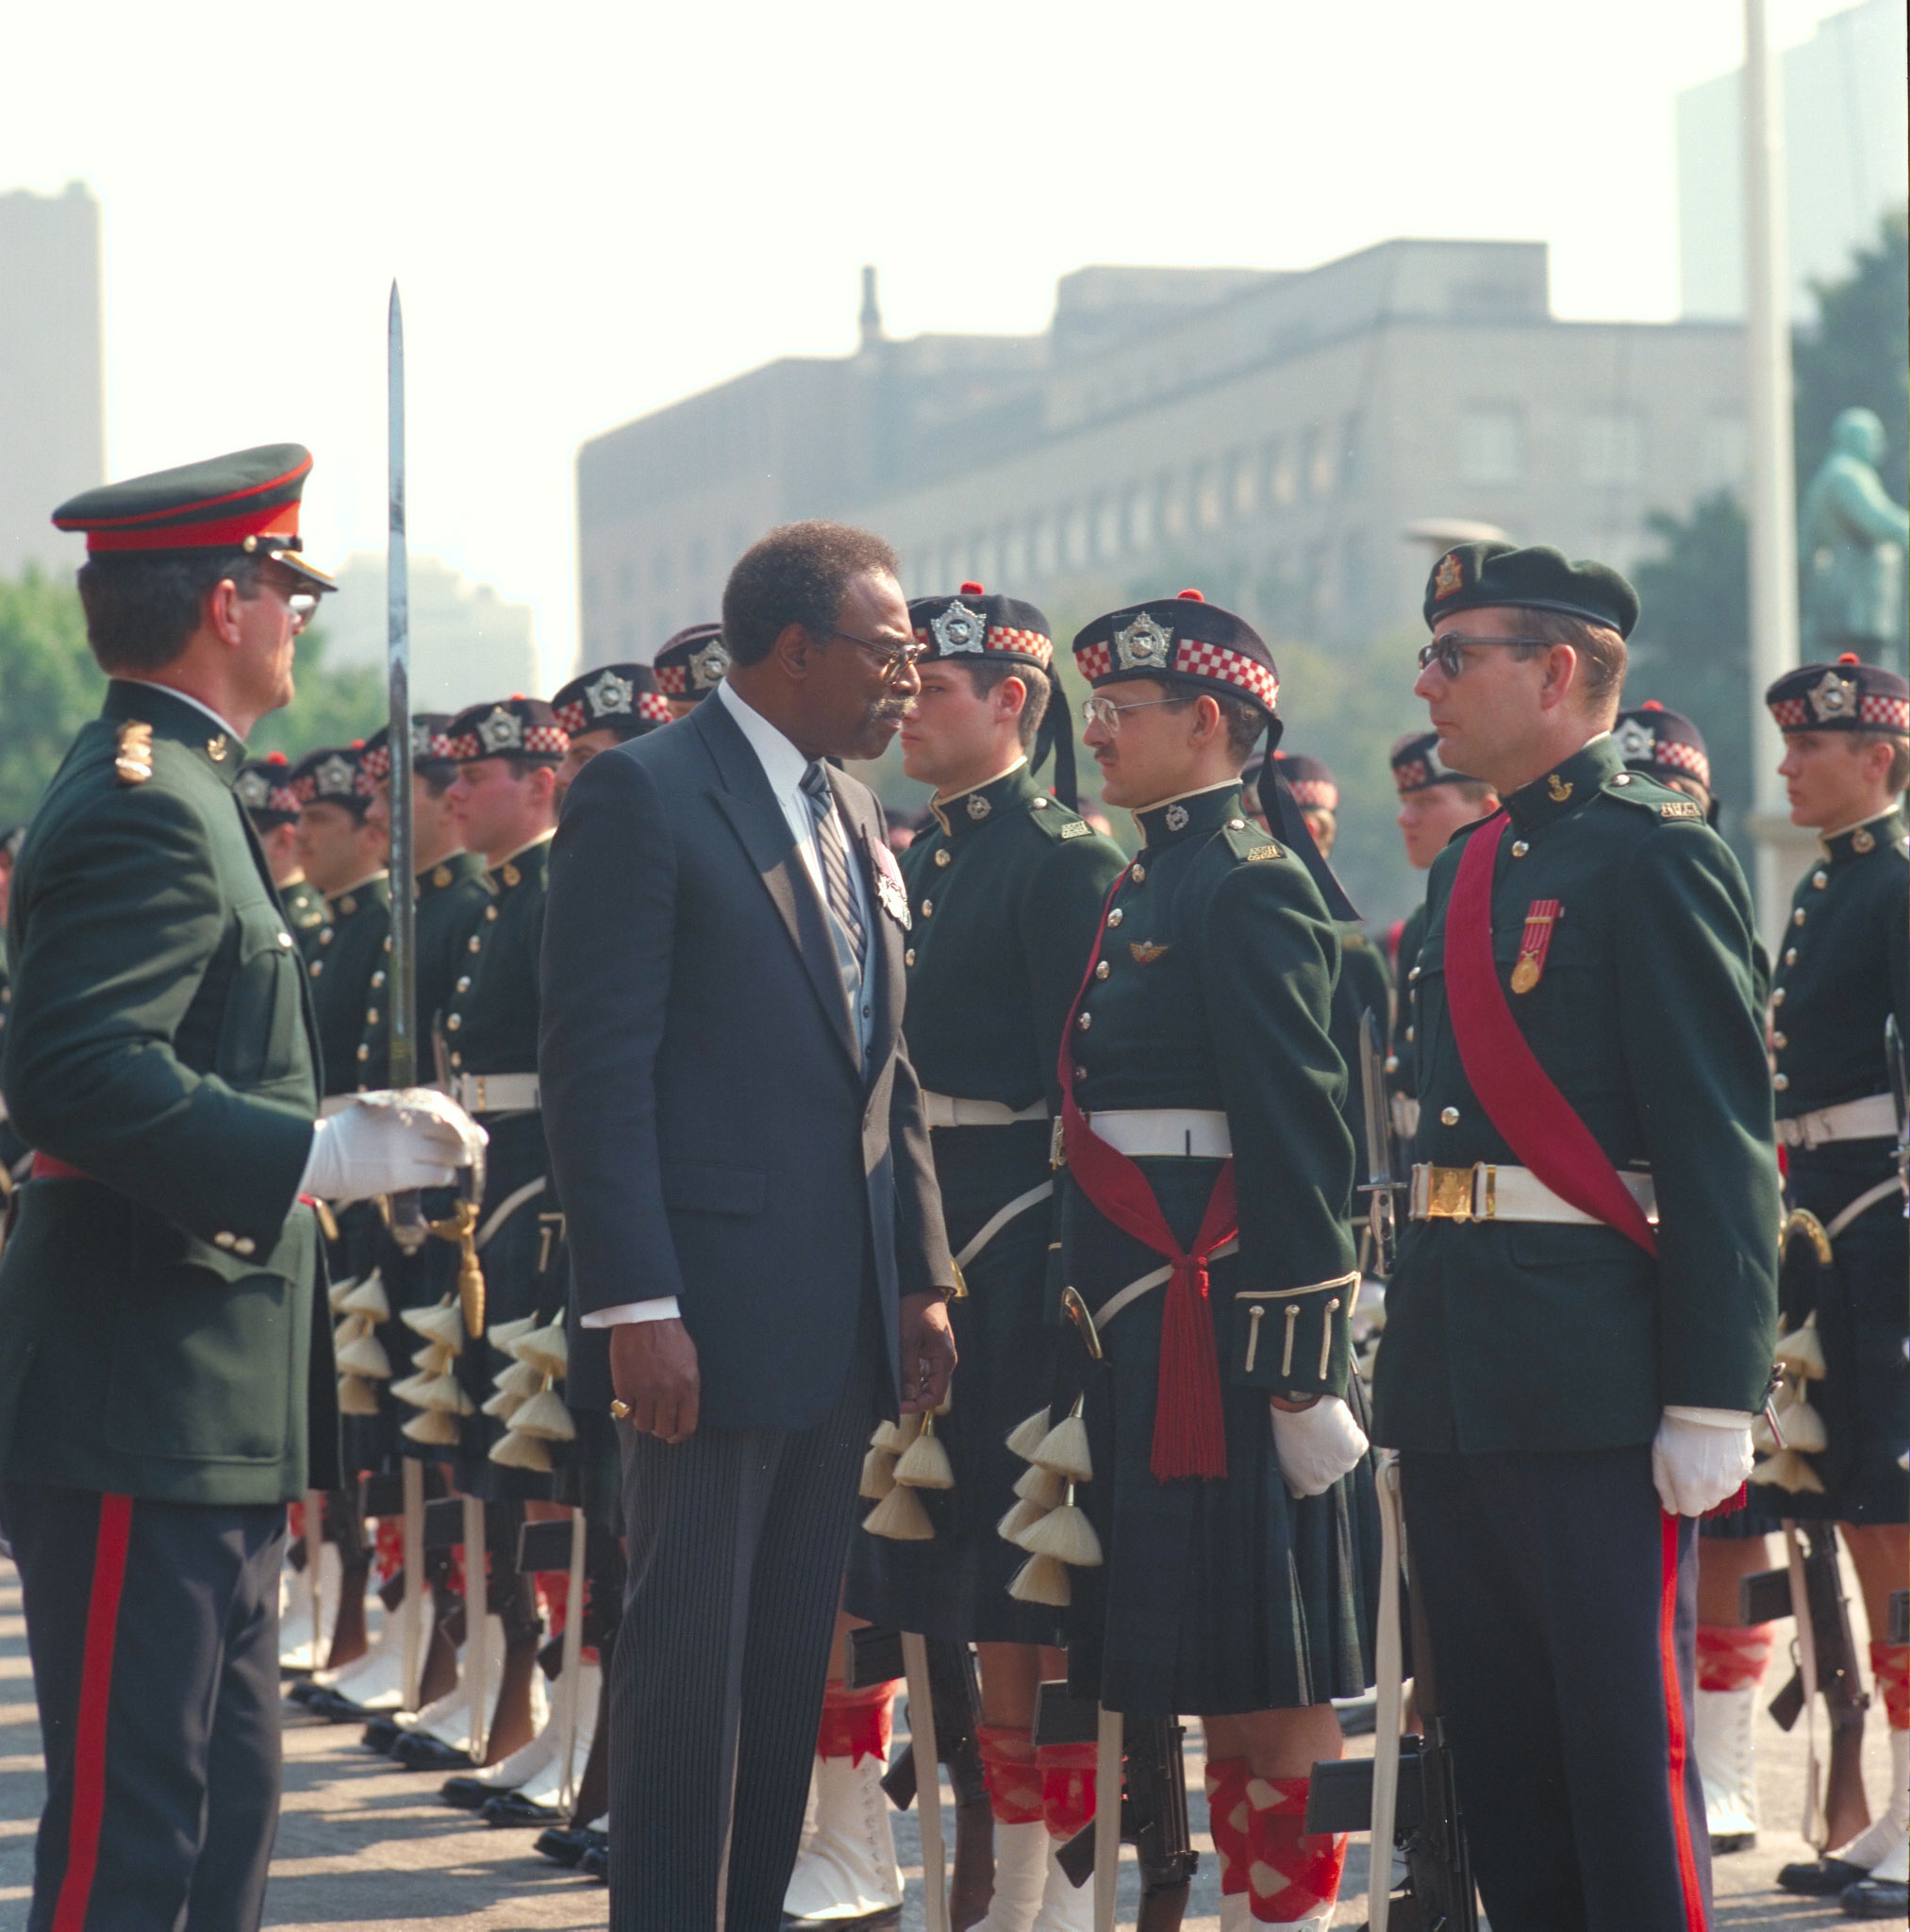 Lincoln Alexander inspects a Canadian Armed Forces guard of honour during his tenure as lieutenant governor of Ontario. PHOTO: DND Archives, IOC85-454